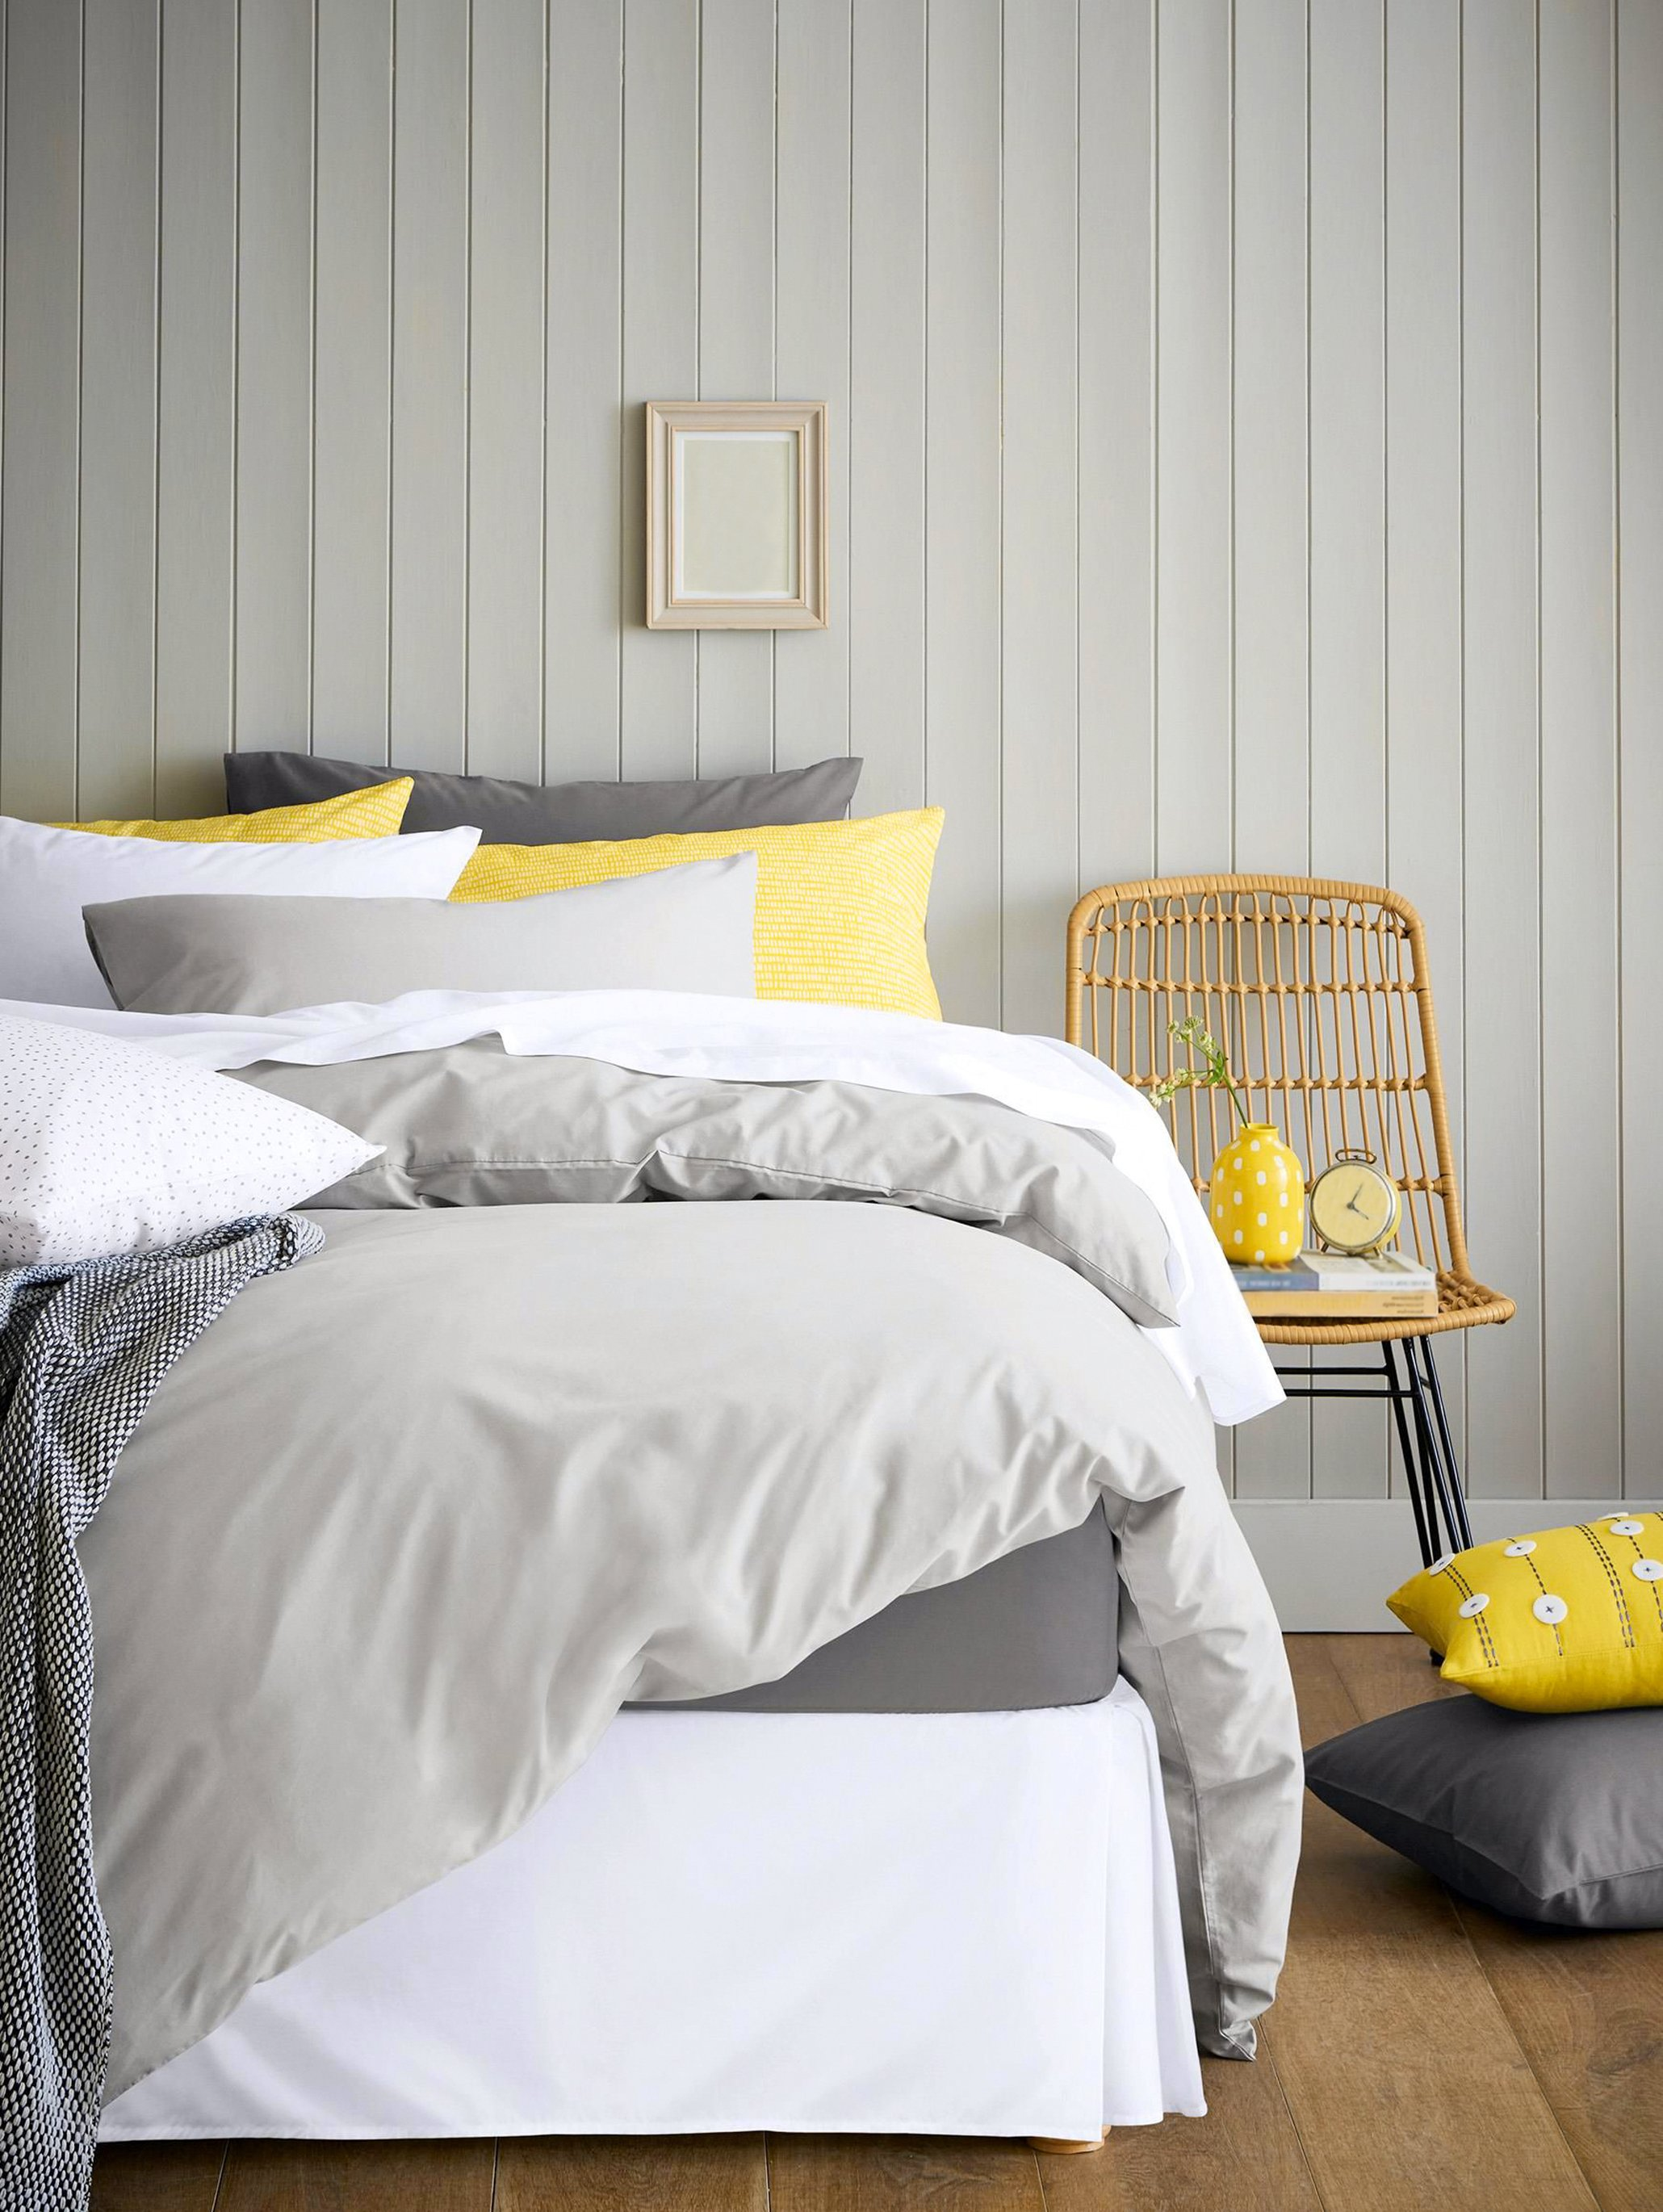 Bed with a grey comforter and white, grey, and yellow pillows. Story describes what to do when you can't fall asleep.